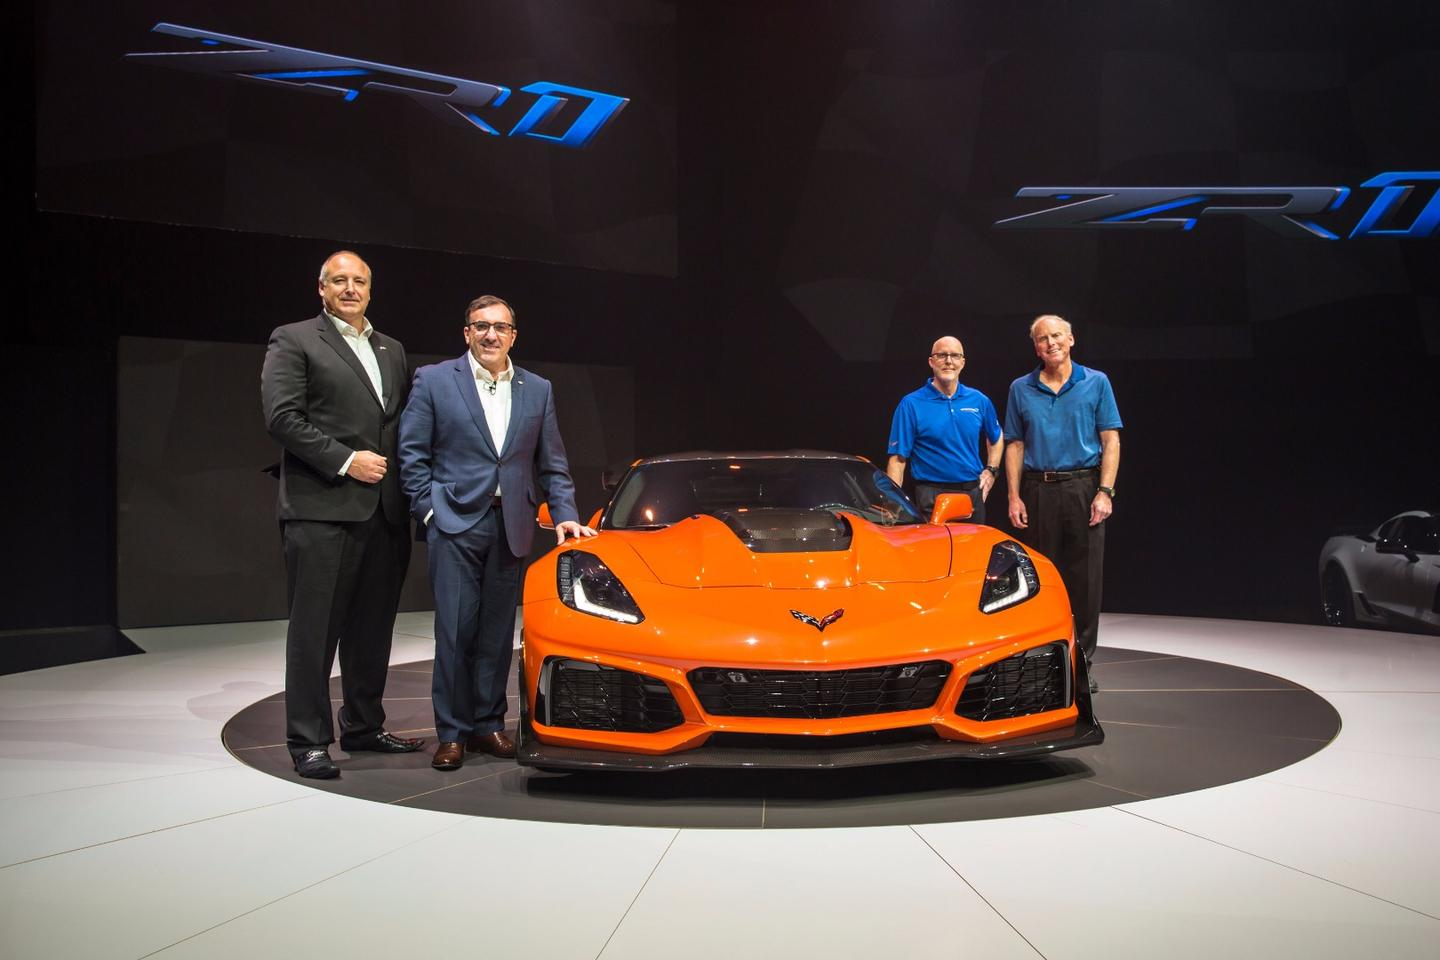 2019 Corvette ZR1: launched in Dubai